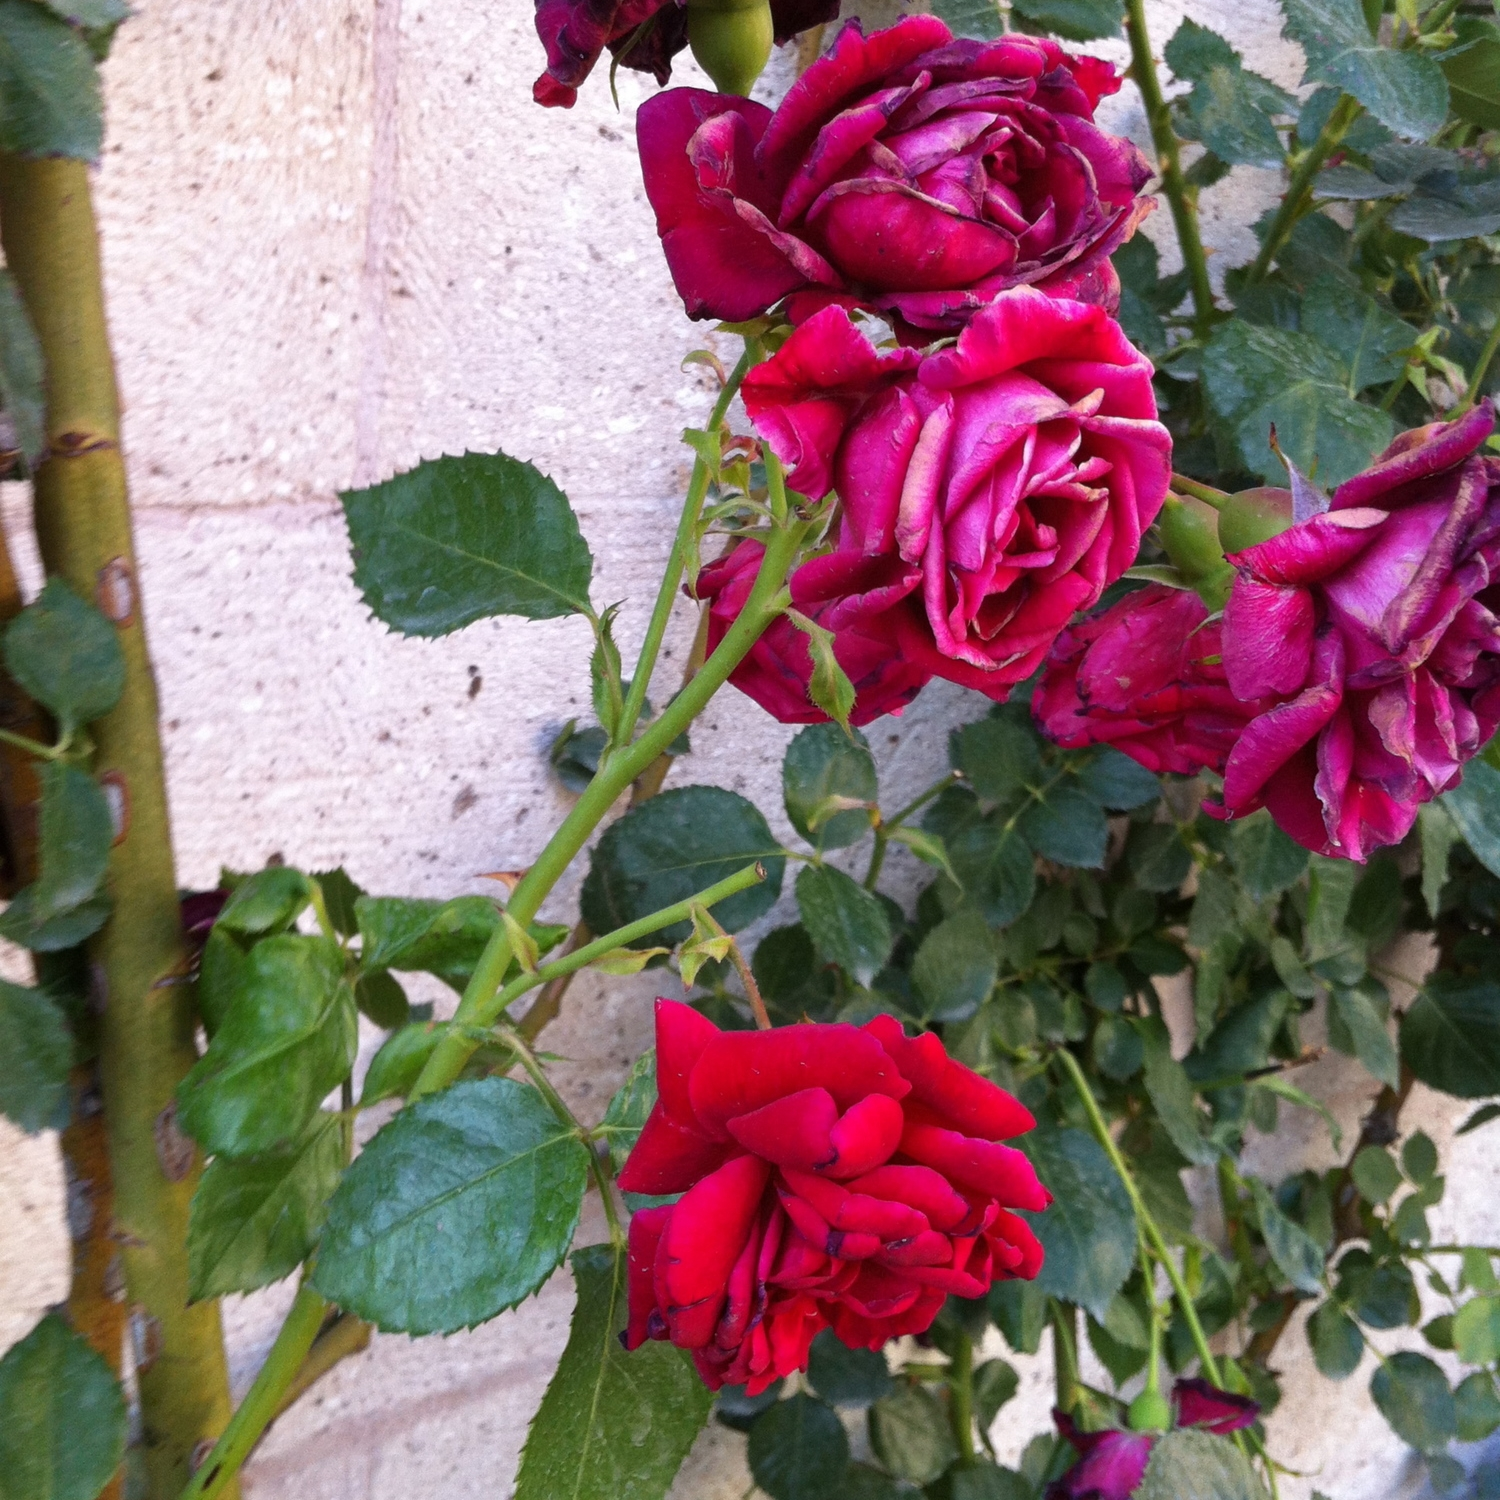 Roses growing in Turkey